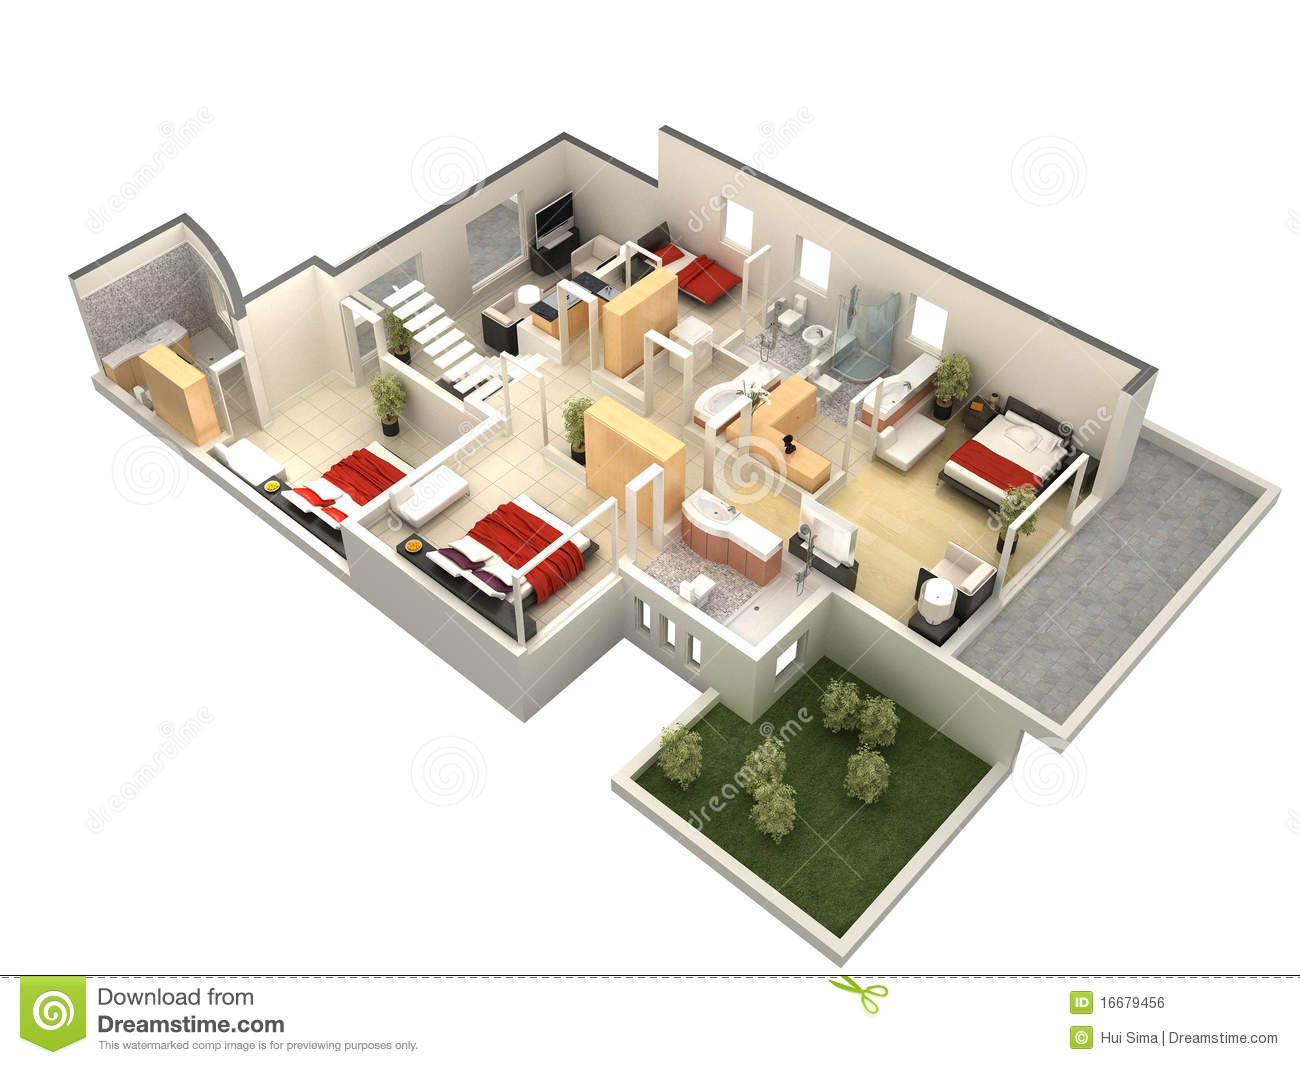 3D Floor Plan Royalty Free Stock Image Image 16679456